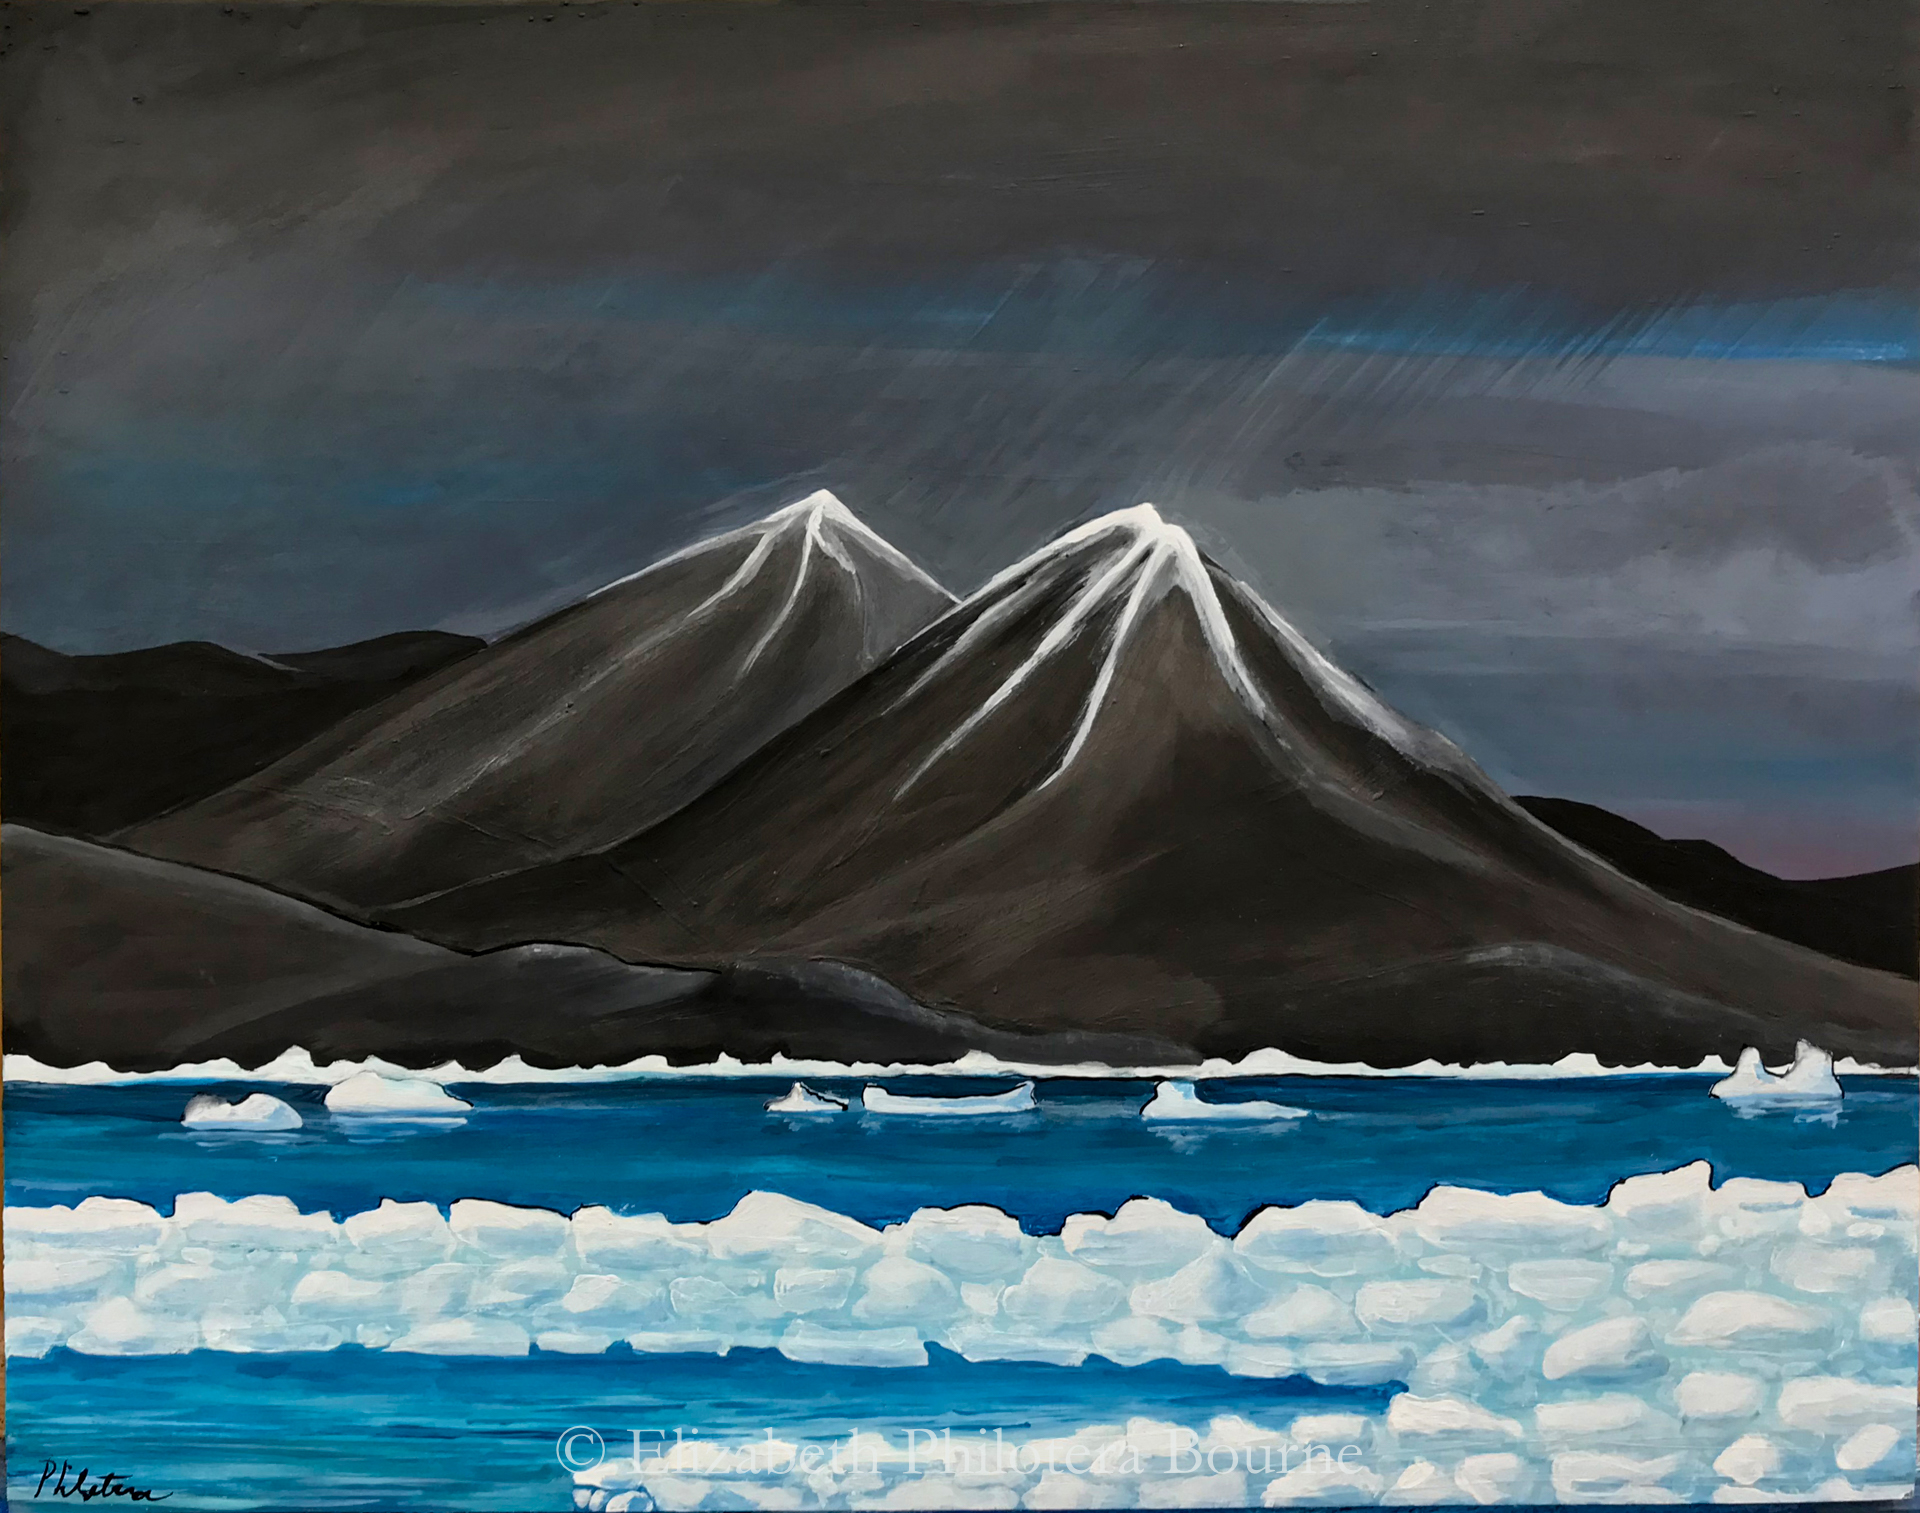 painting of sea ice in a fjord with two black mountains in storm